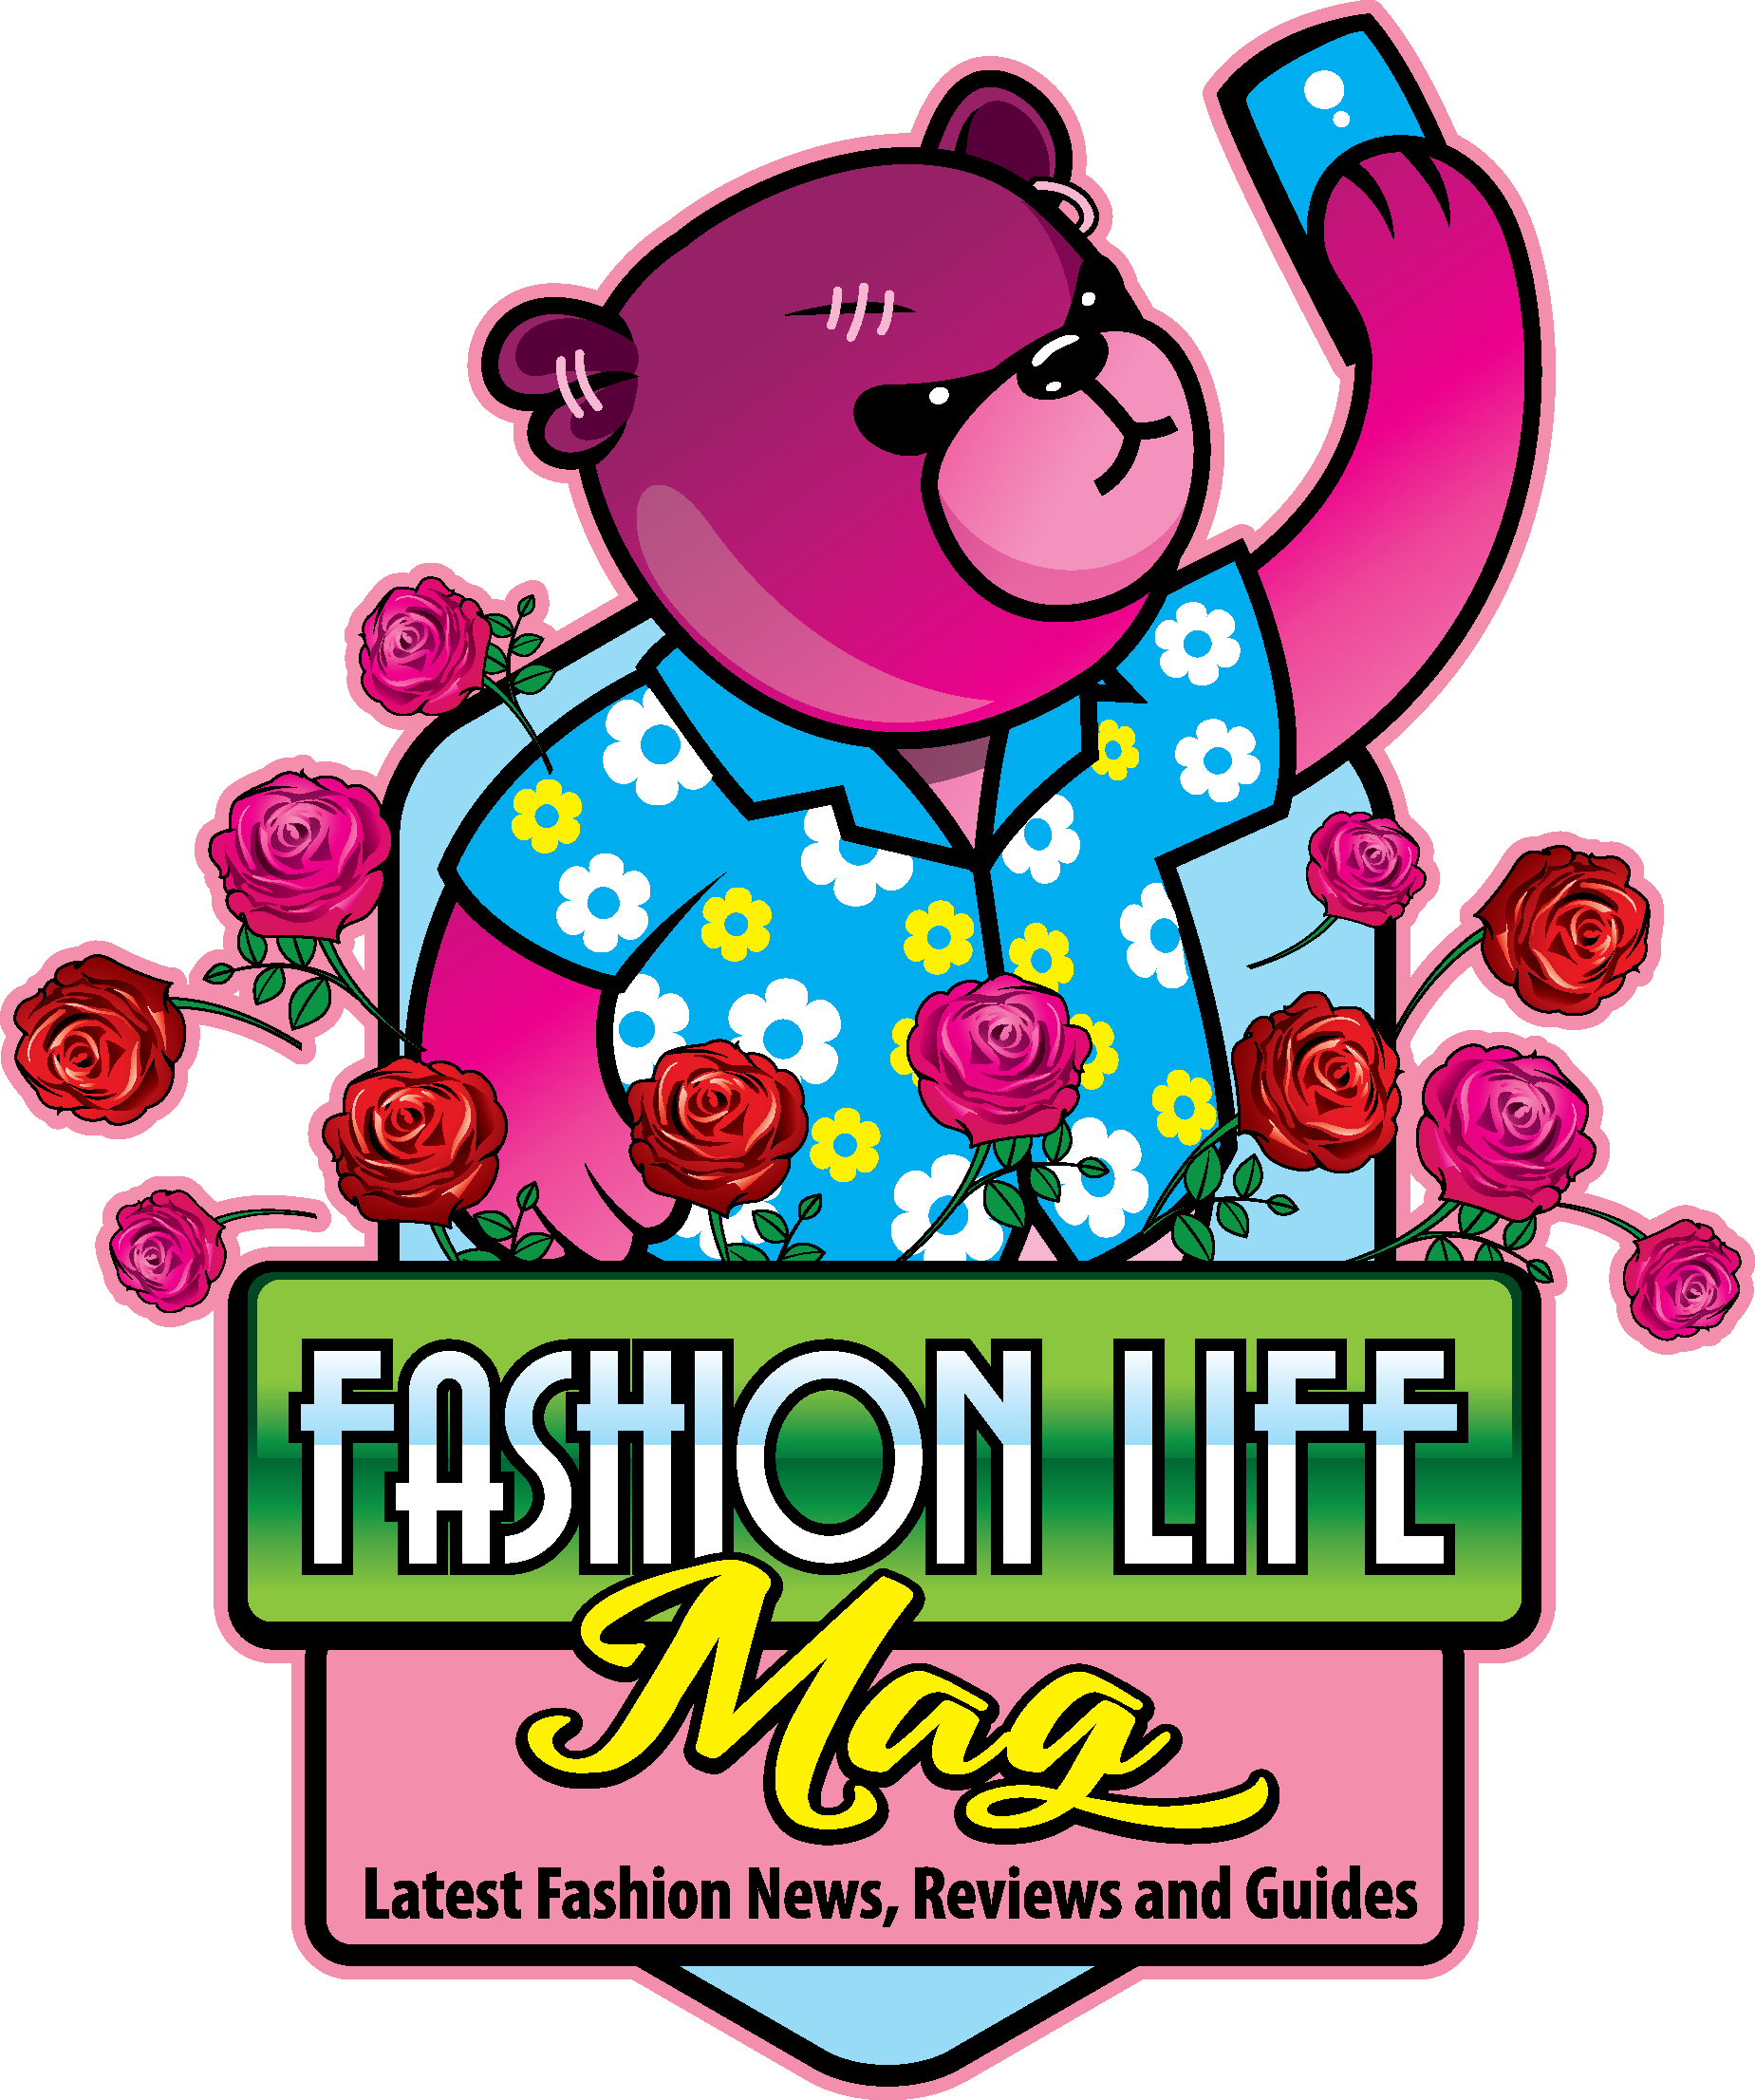 Fashion Life Mag - Latest Fashion News, Reviews and Guides